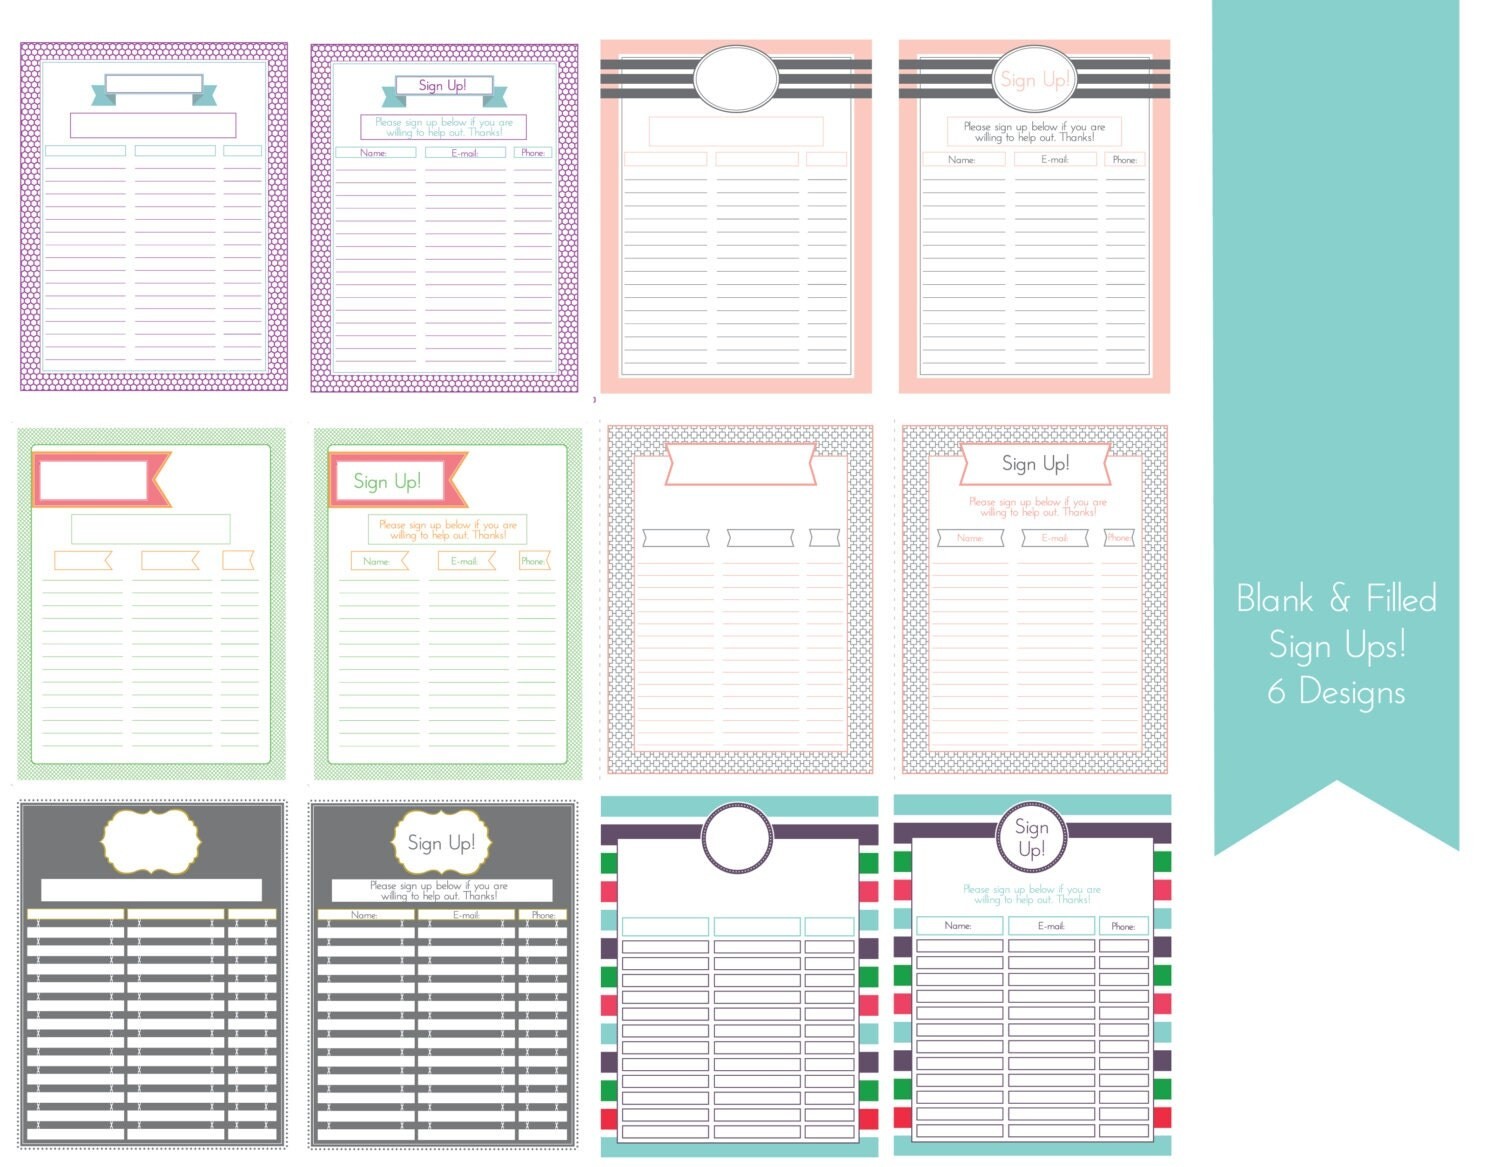 editable sign up sheet